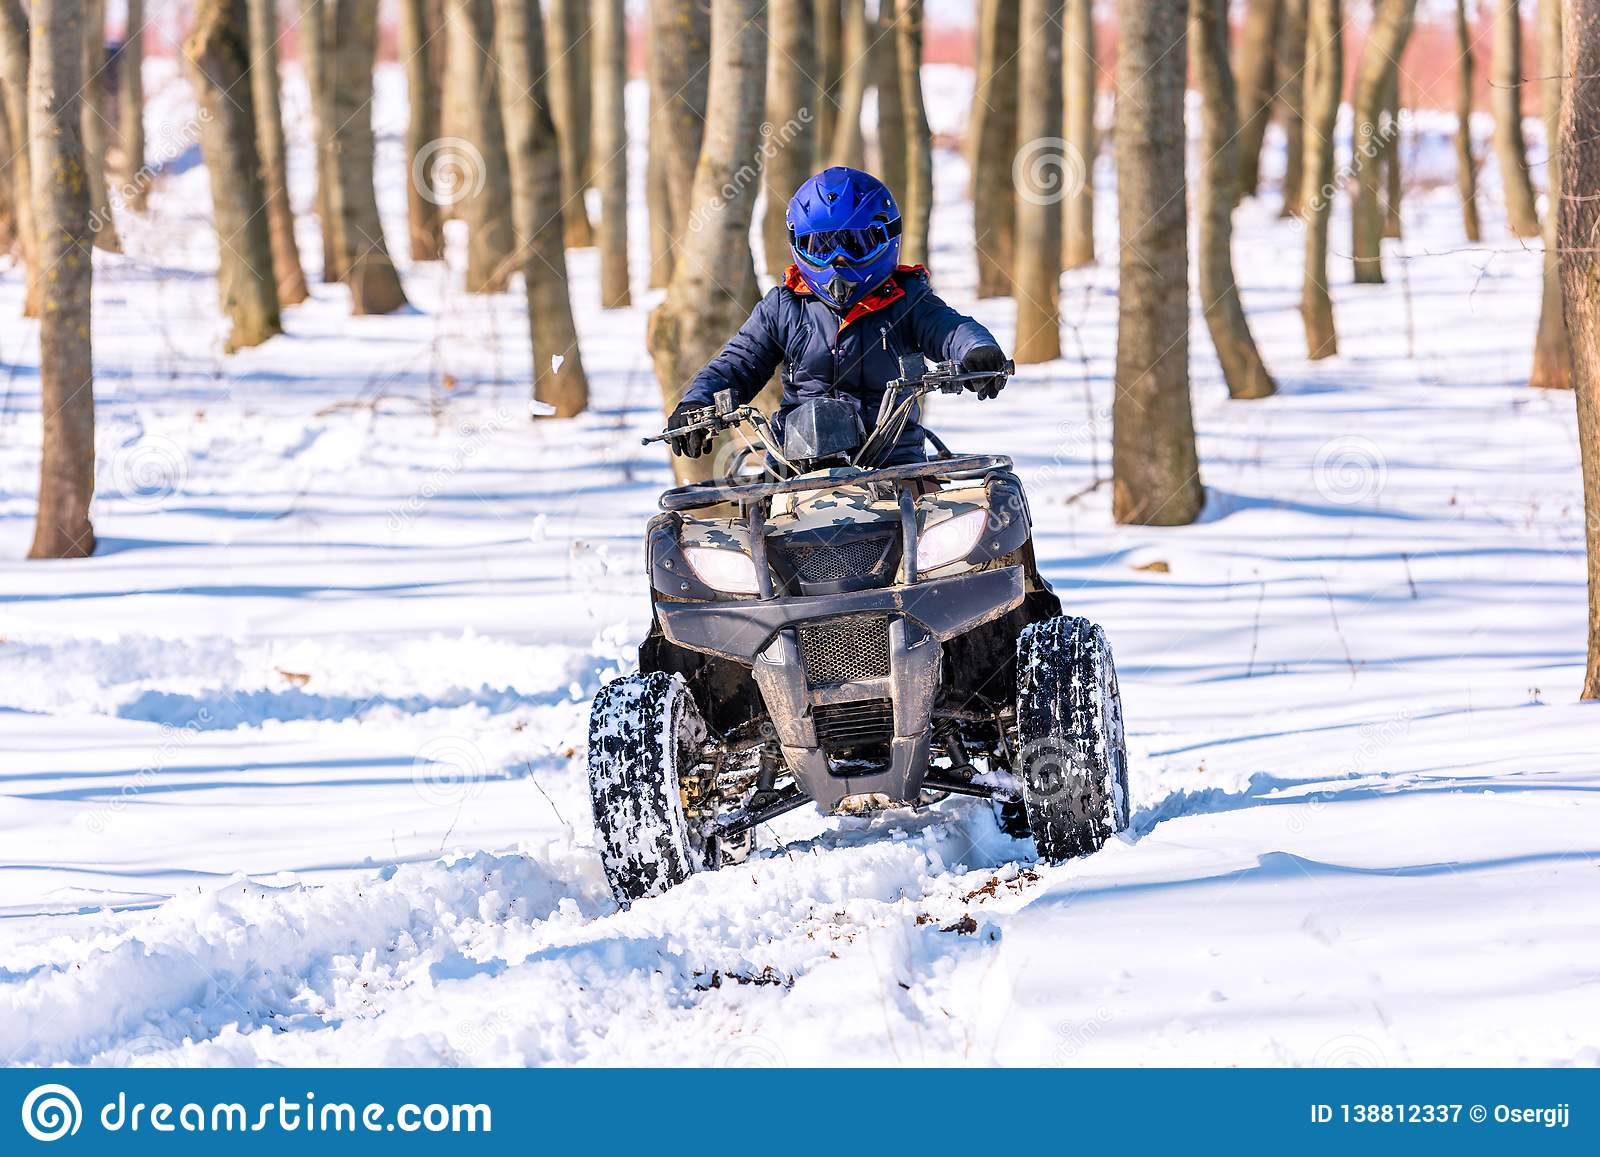 Travel in the winter on the ATV. Beautiful winter nature